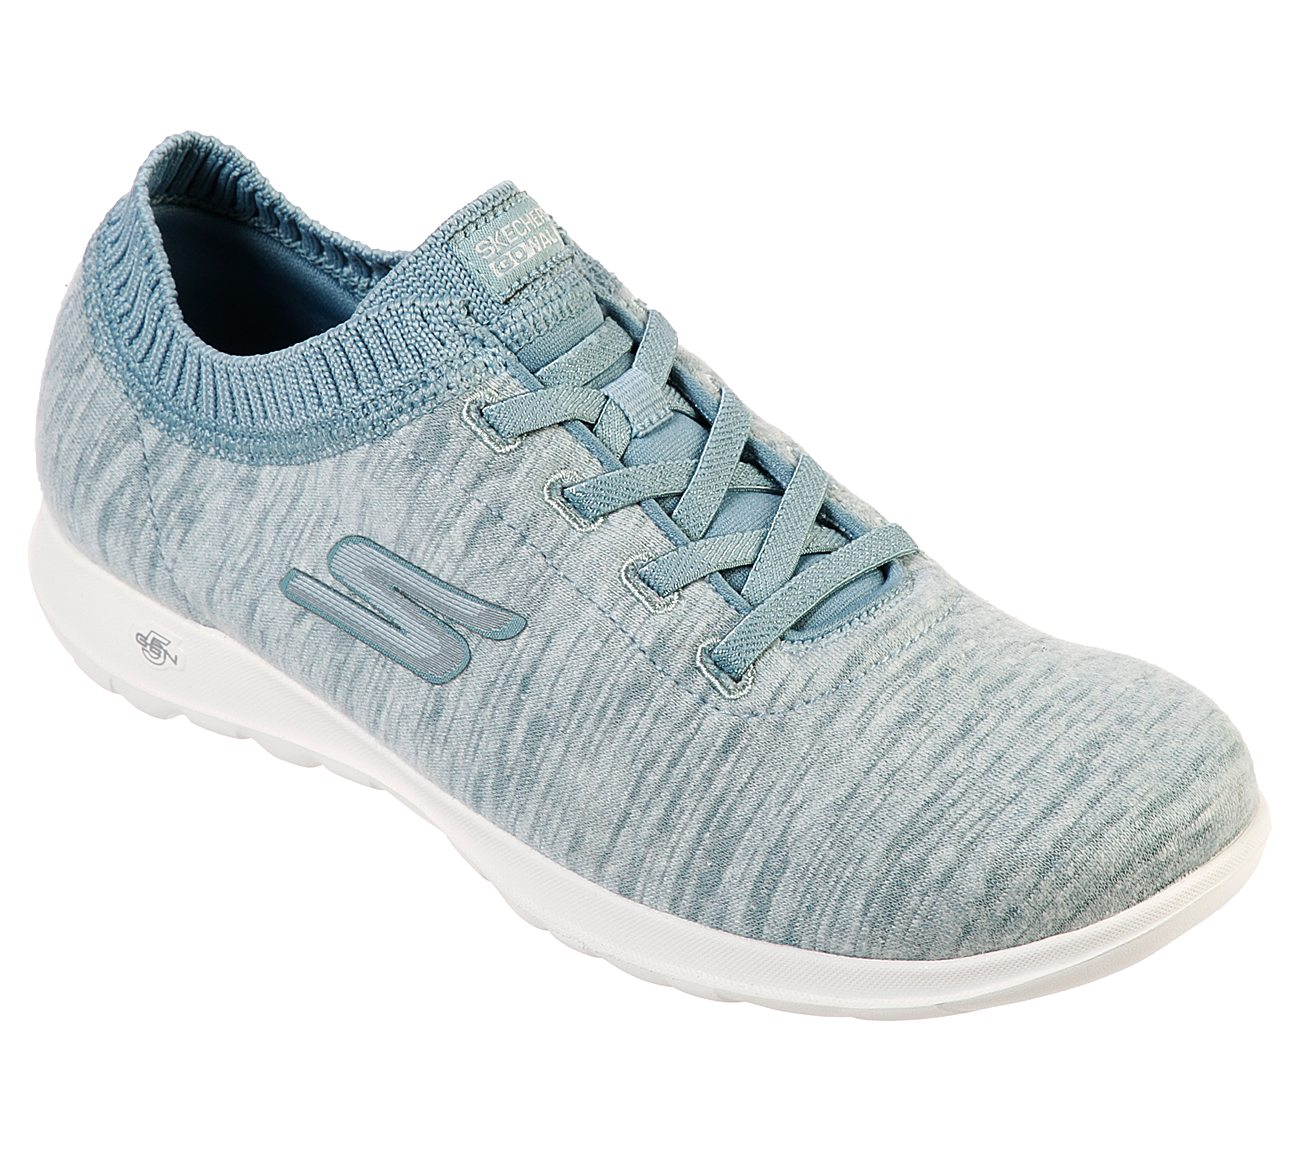 Gowalk Floret Performance Skechers Lite Buy MpqVjLzUSG